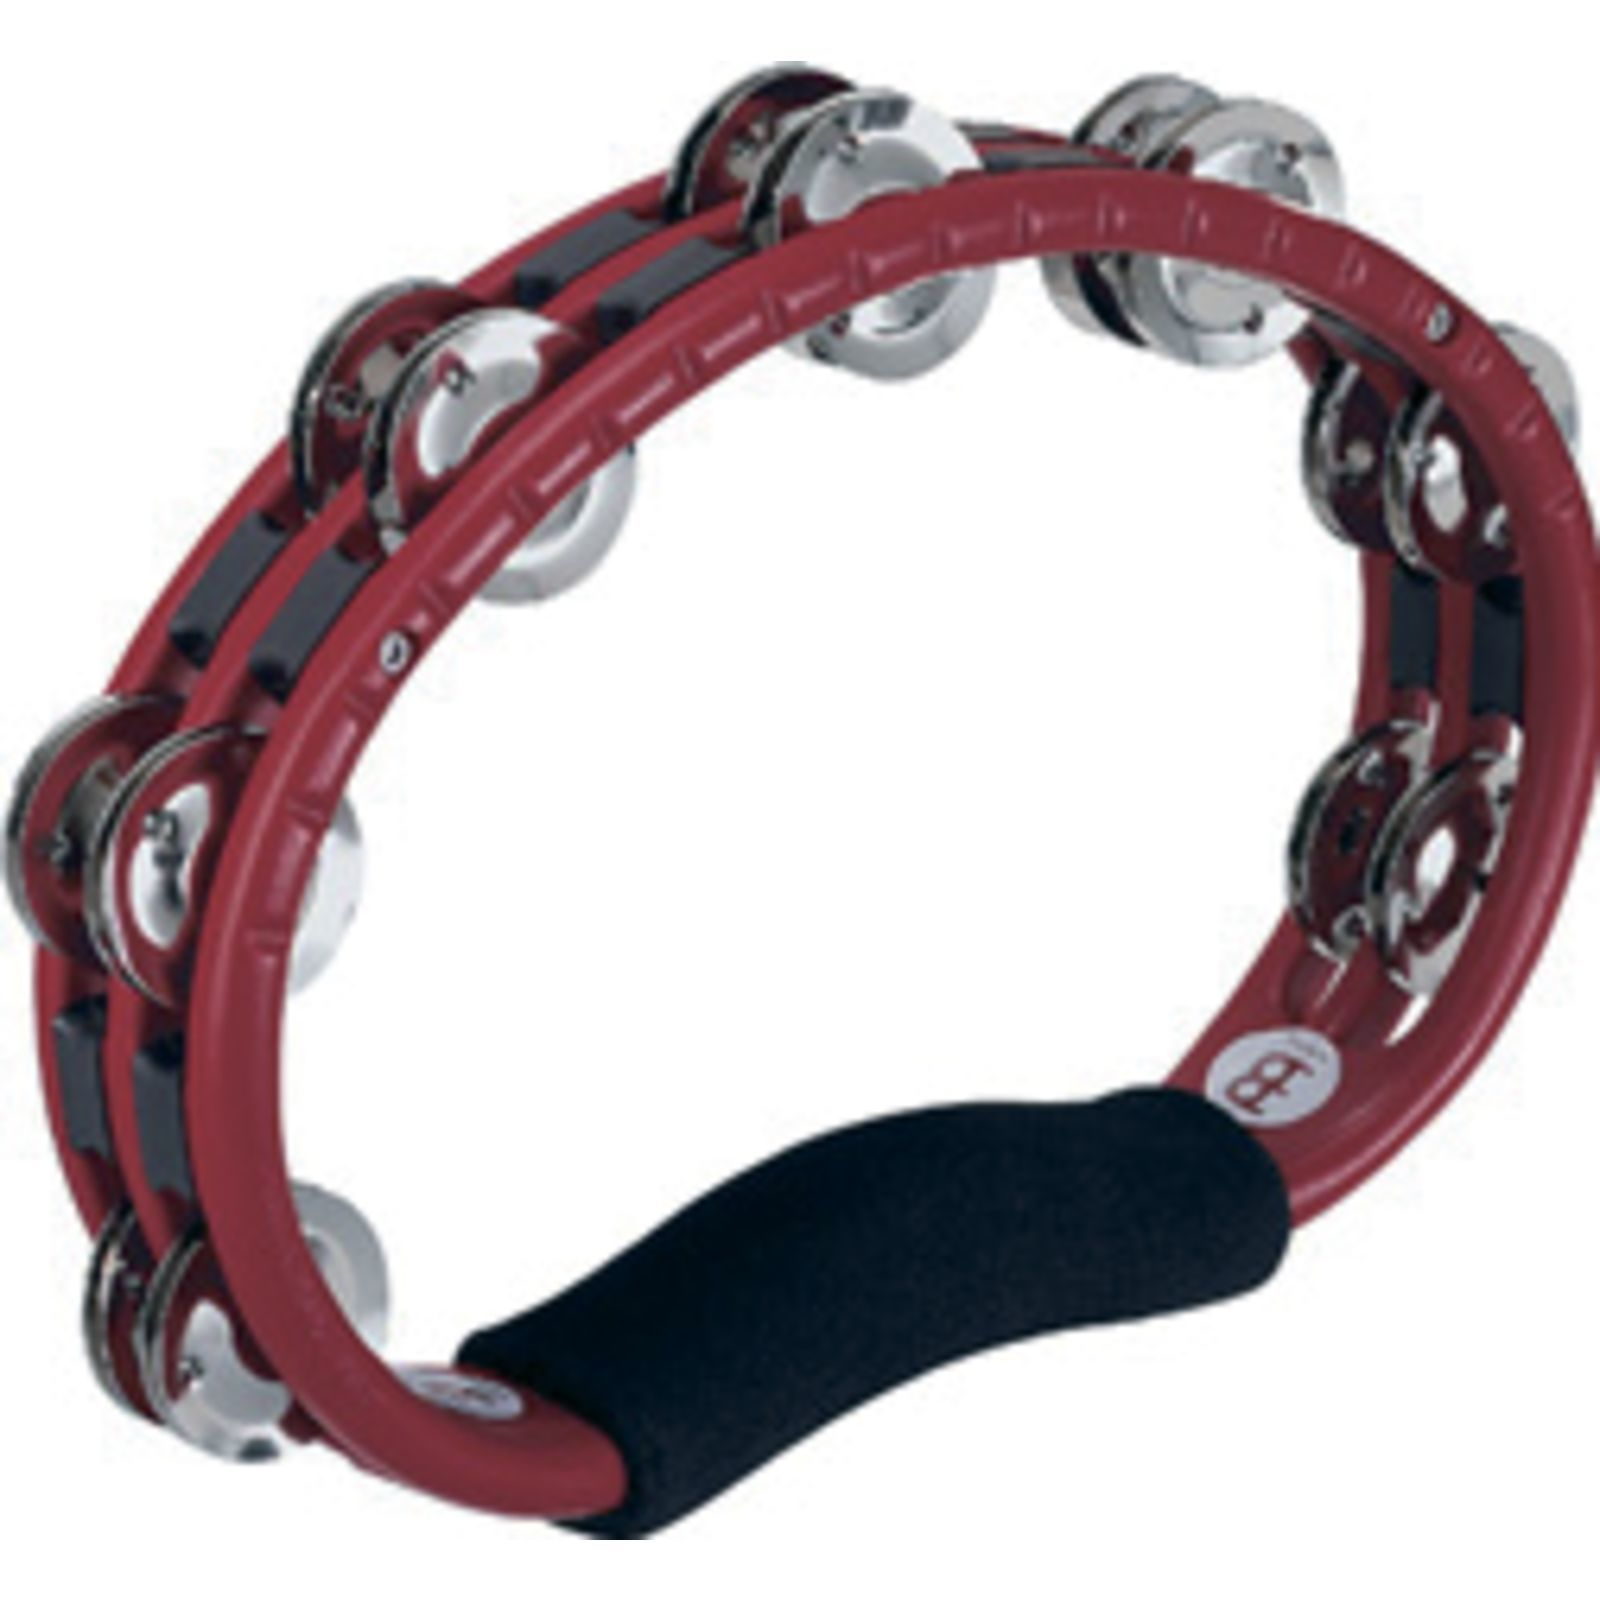 Meinl Hand Tambourine TMT1R, Steel Jingles Product Image